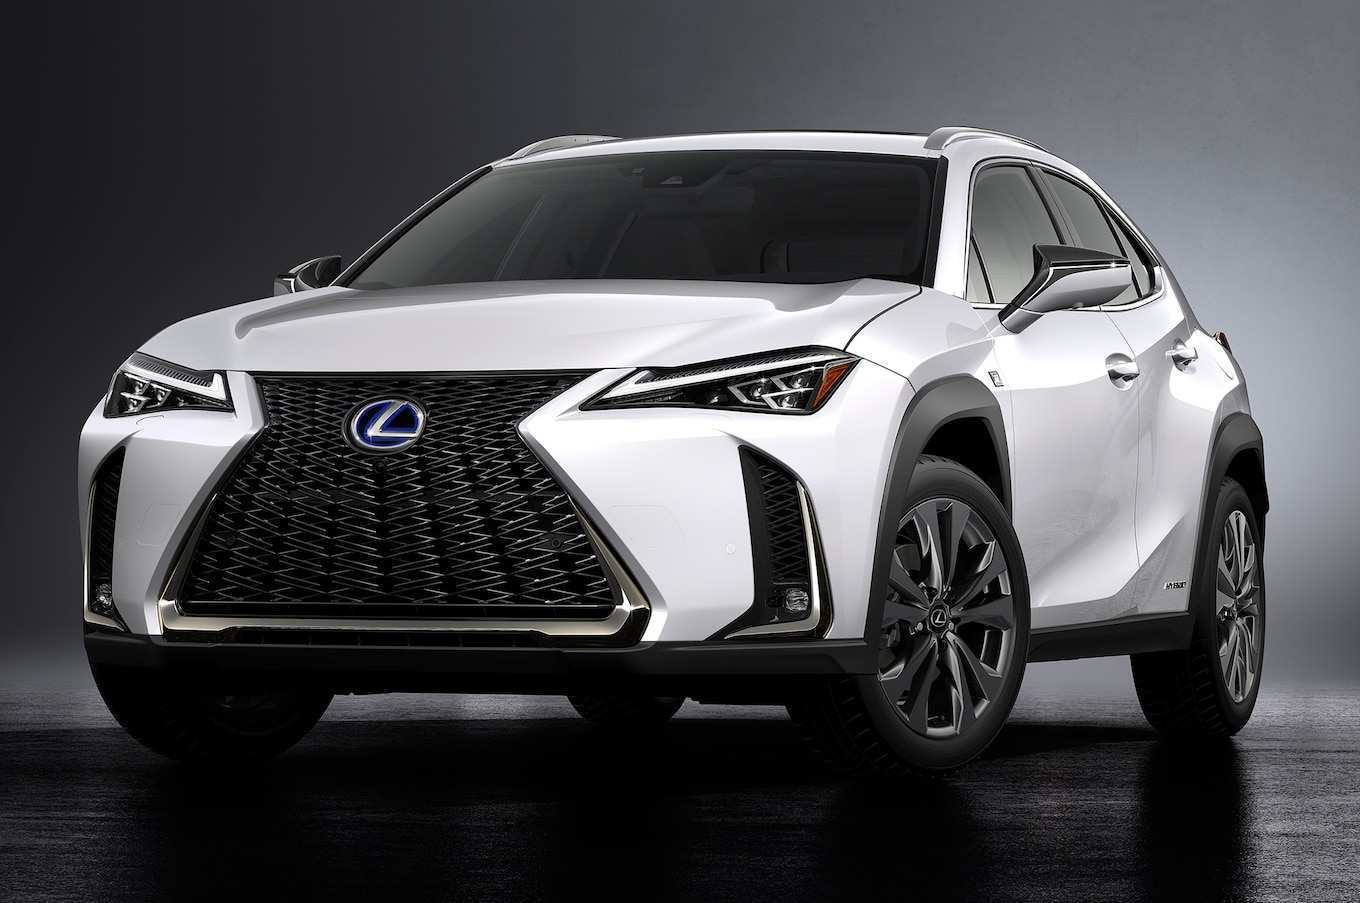 95 New Lexus Ux 2019 Price 2 Spy Shoot with Lexus Ux 2019 Price 2